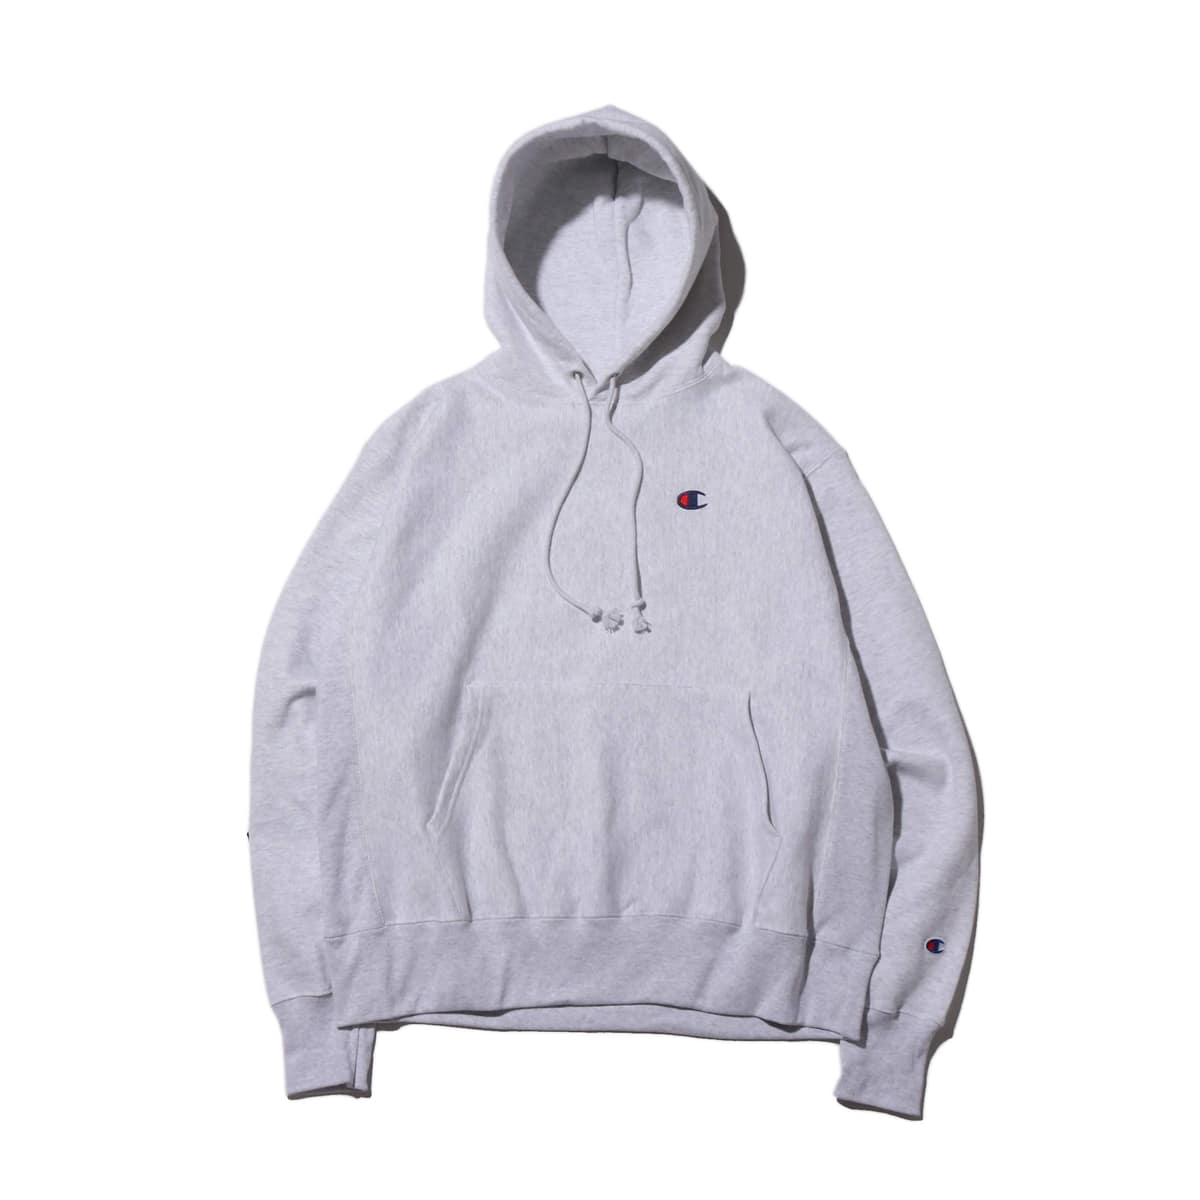 REMAKE HOODIE by 太田夢莉 SILVER 19HO-S_photo_large